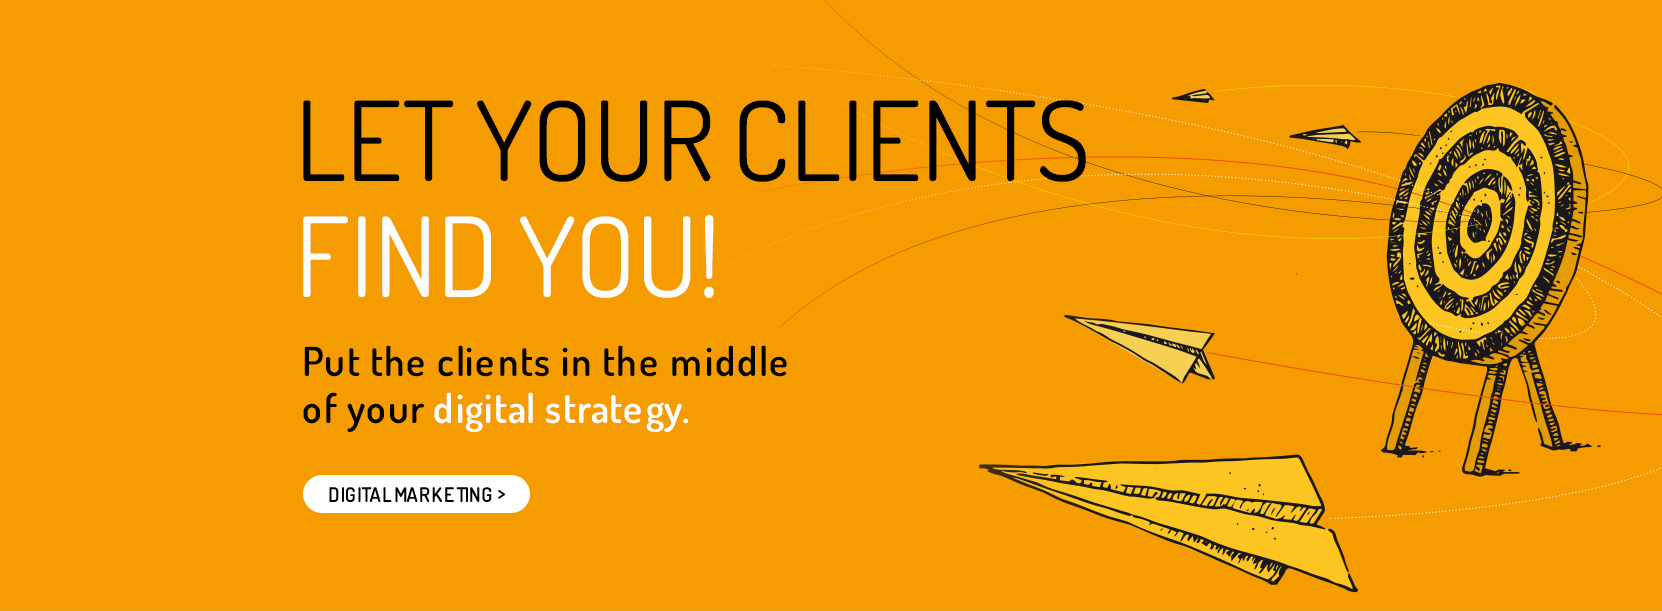 Let your clients find you! Put the clients in the middle of your digital strategy.